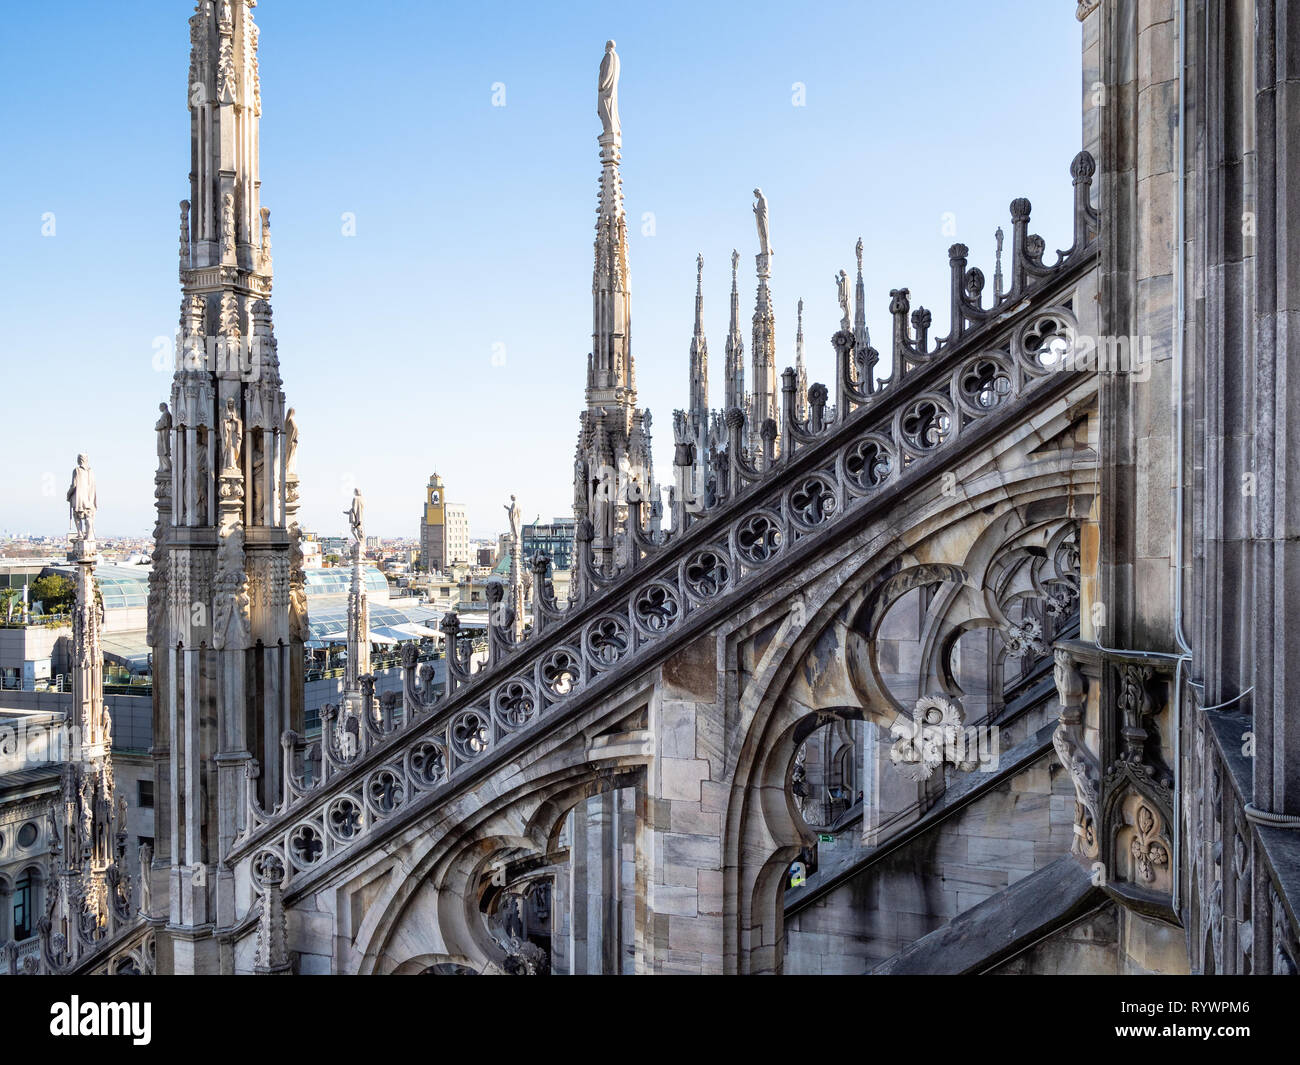 MILAN, ITALY - FEBRUARY 24, 2019: decor of roof of Milan Cathedral (Duomo di Milano) in Milan in morning. This Basilica is the largest church in Italy - Stock Image